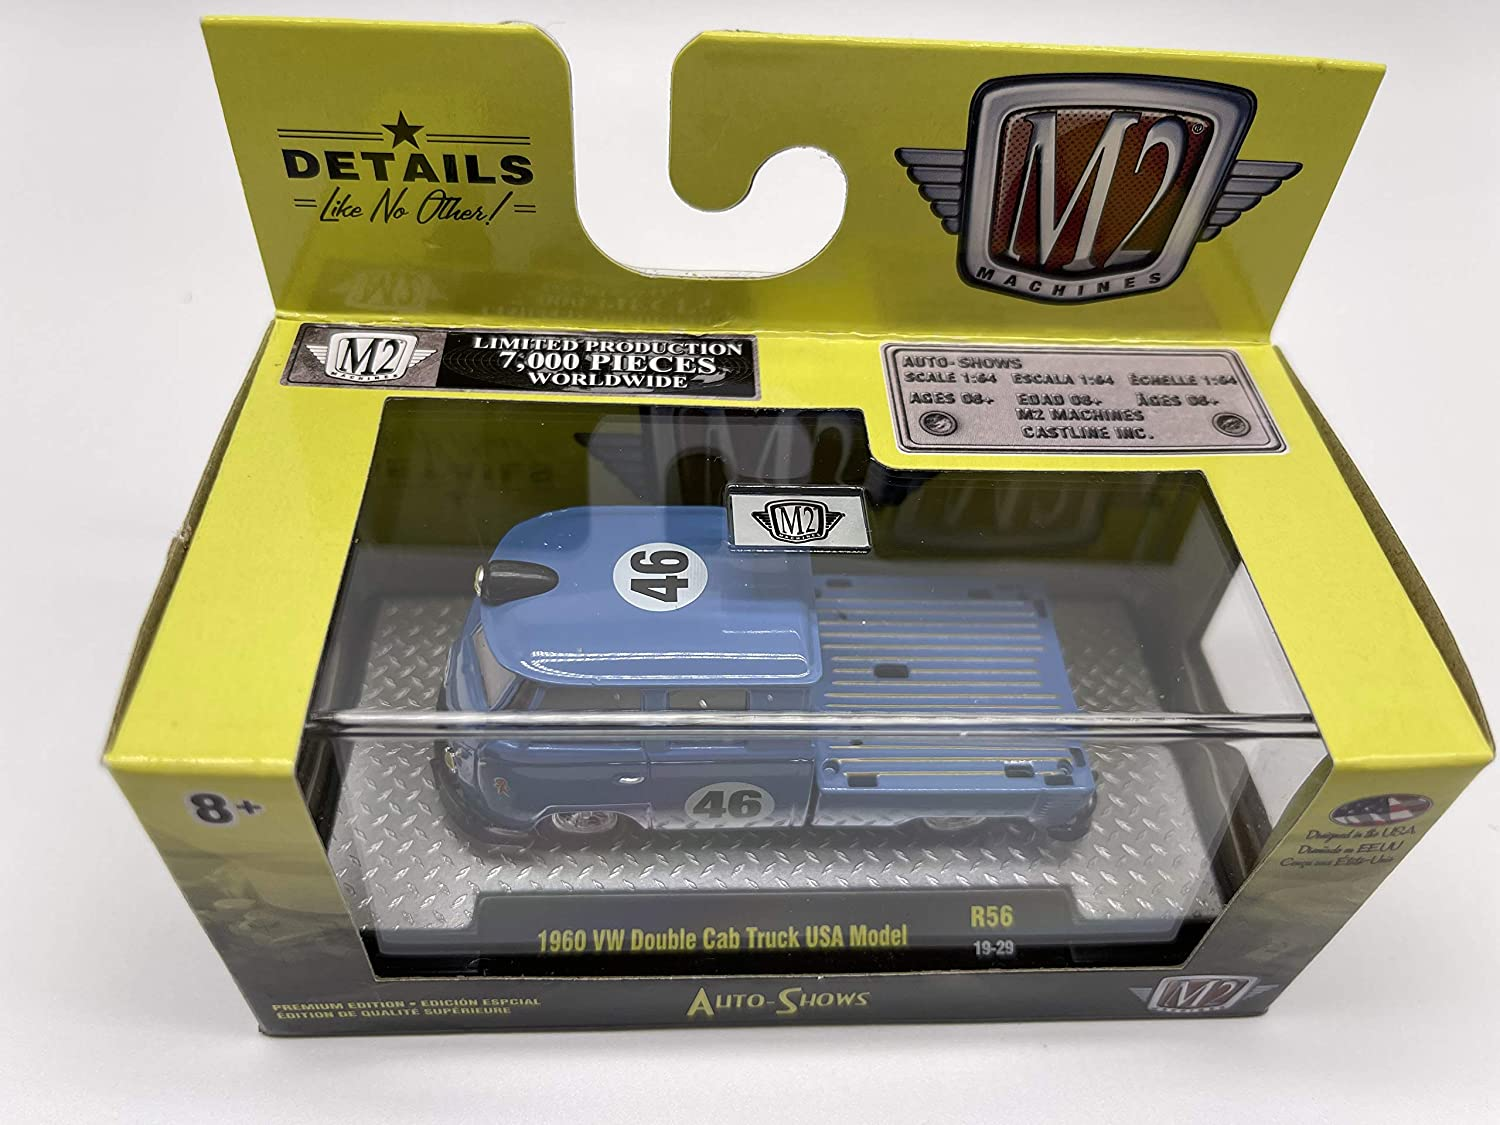 1 of 7000 M2 Machines by M2 Collectible Auto-Shows 1960 VW Double Cab Truck USA Model 1:64 Scale R56 19-29 Blue Details Like NO Other